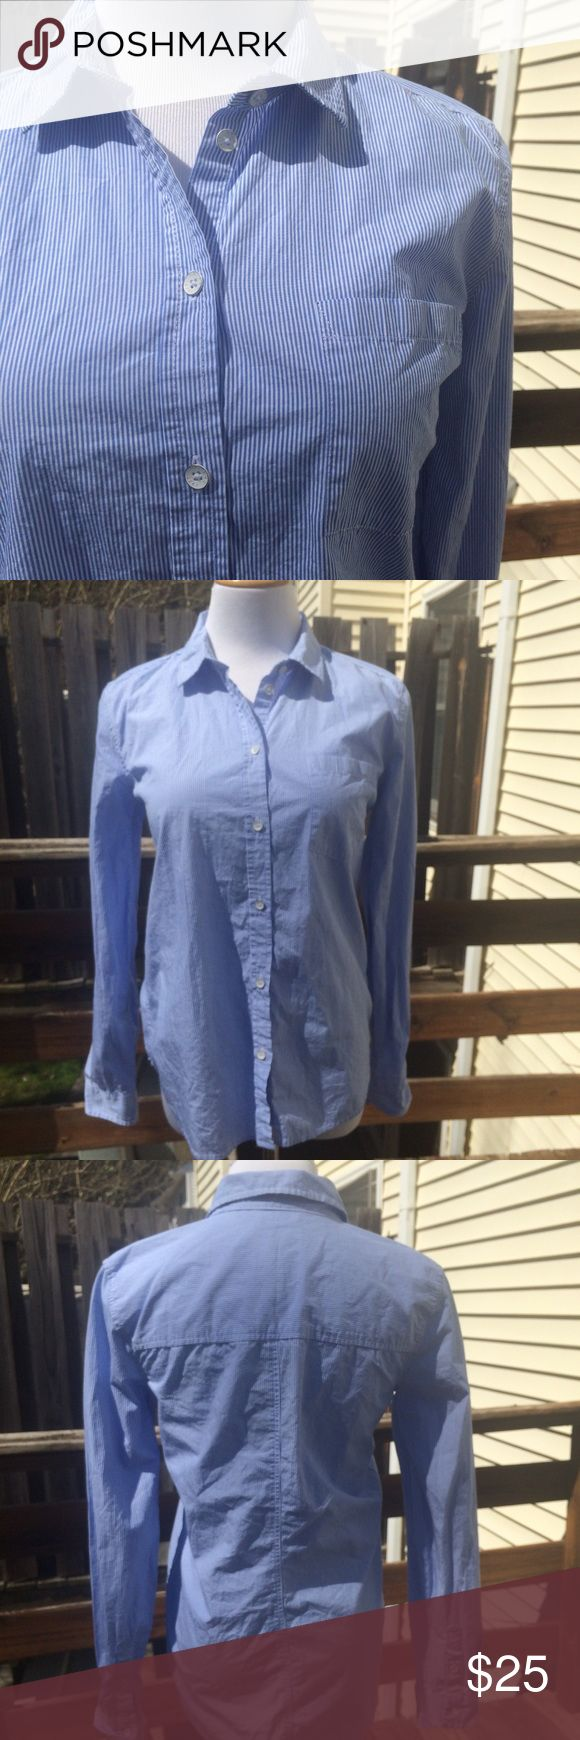 NWT America Eagle Button Down New with tags. Blue and white pinstripe button down top. Size XS, but it will also fit a small. My dressform is a medium, and it fights tightly on the form, so extra small and small are likely good fits. American Eagle Outfitters Tops Button Down Shirts